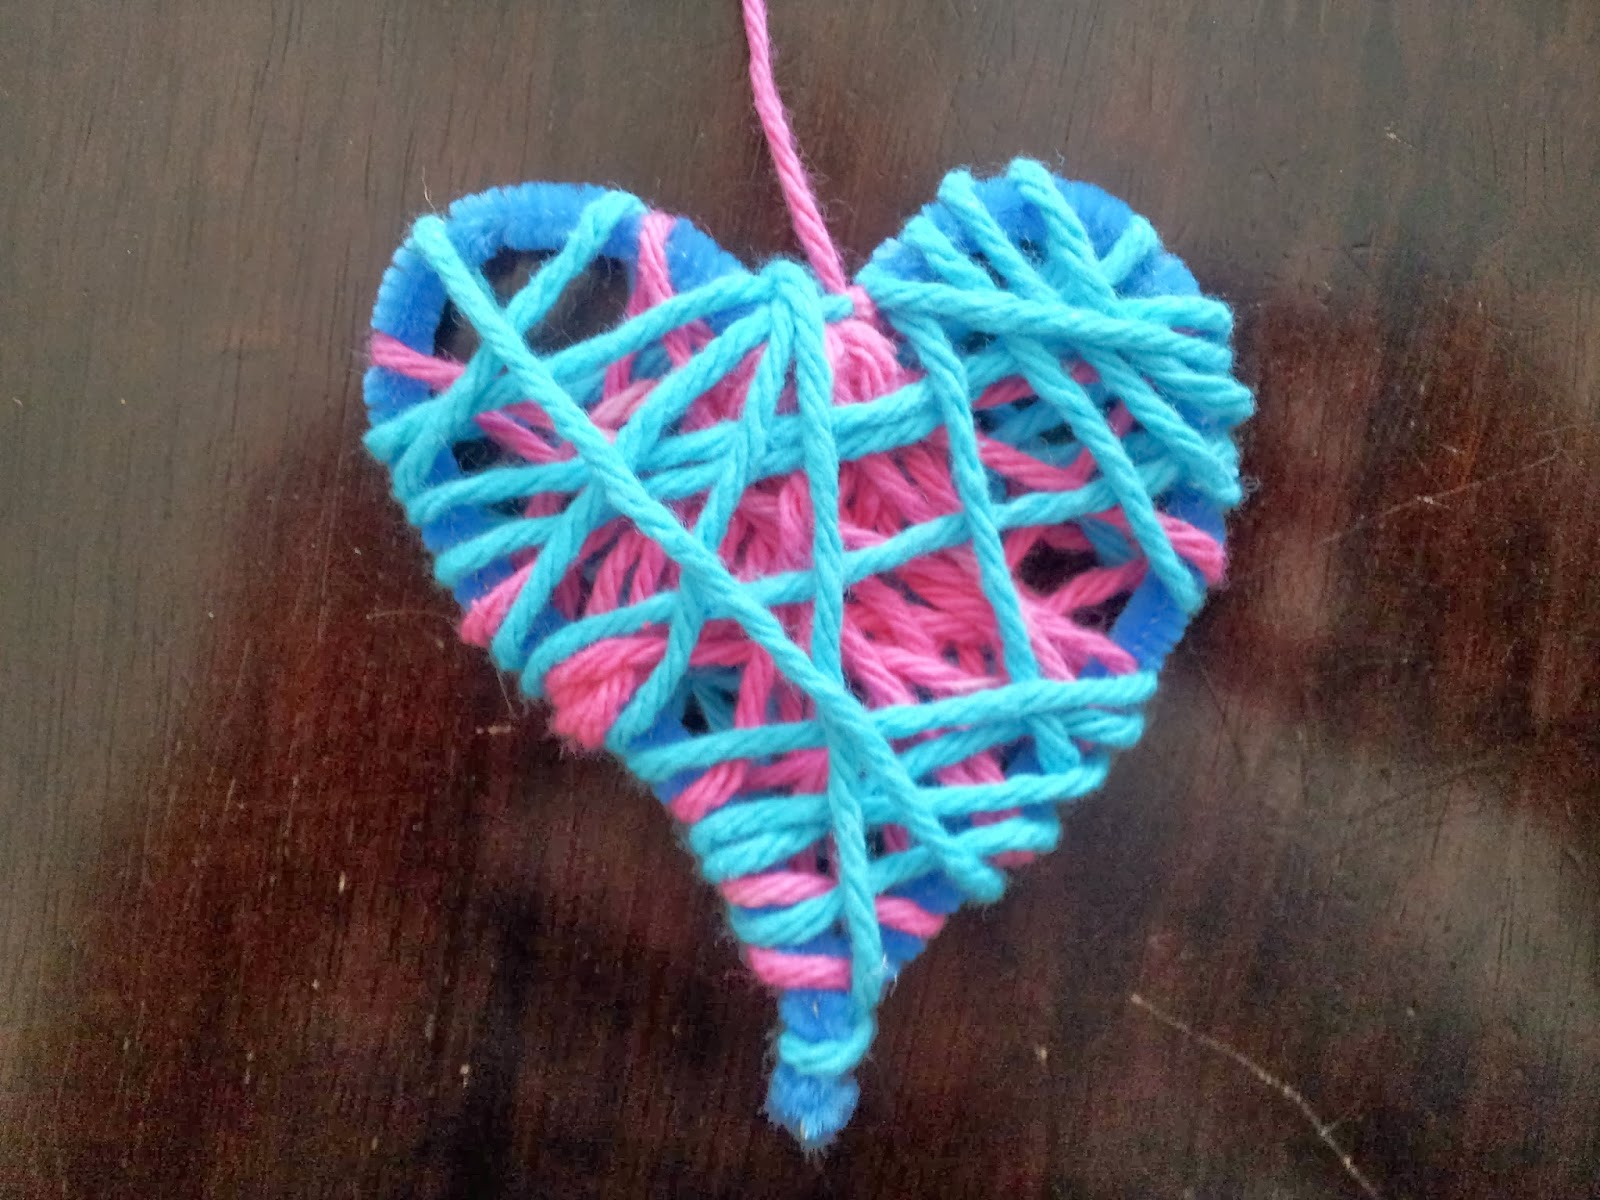 Dream Catcher Pipe Cleaner Hearts, Valentine's Day, Valentine's decor, Valentine's crafts, crafts, kids crafts